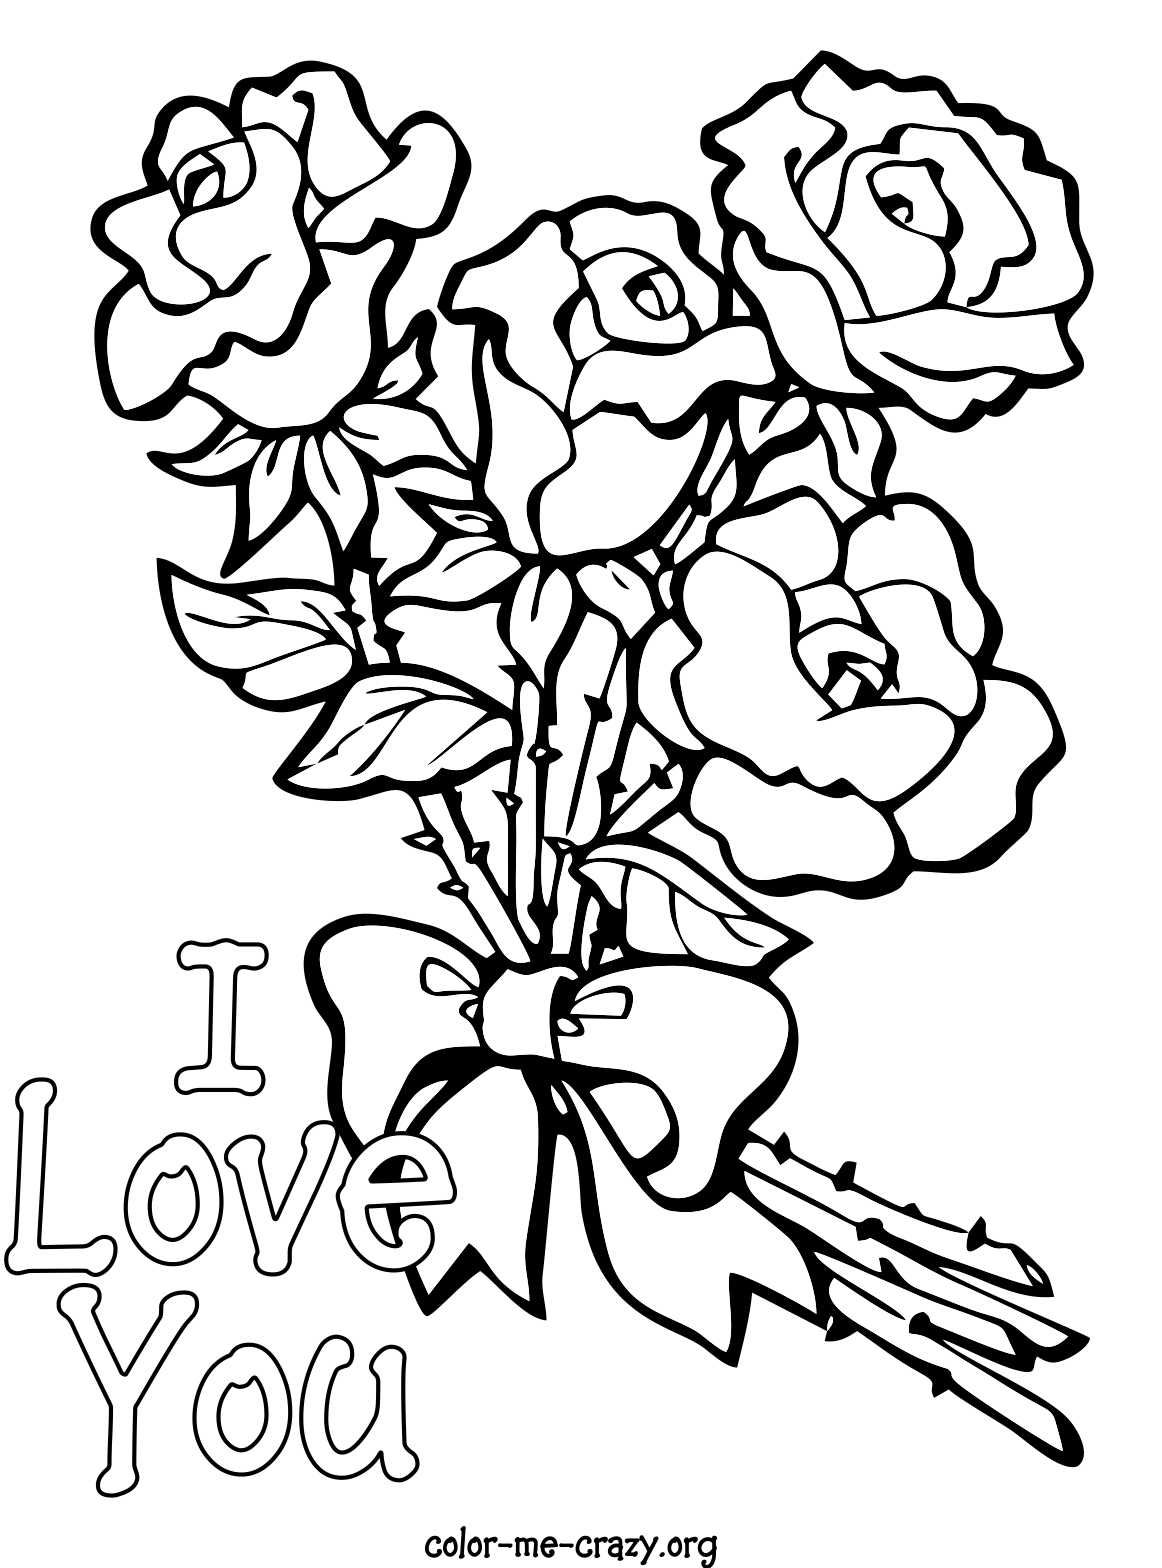 Love you coloring pages coloring page be my valentine coloring - Image Detail For Colormecrazy Org Valentine Coloring Pages